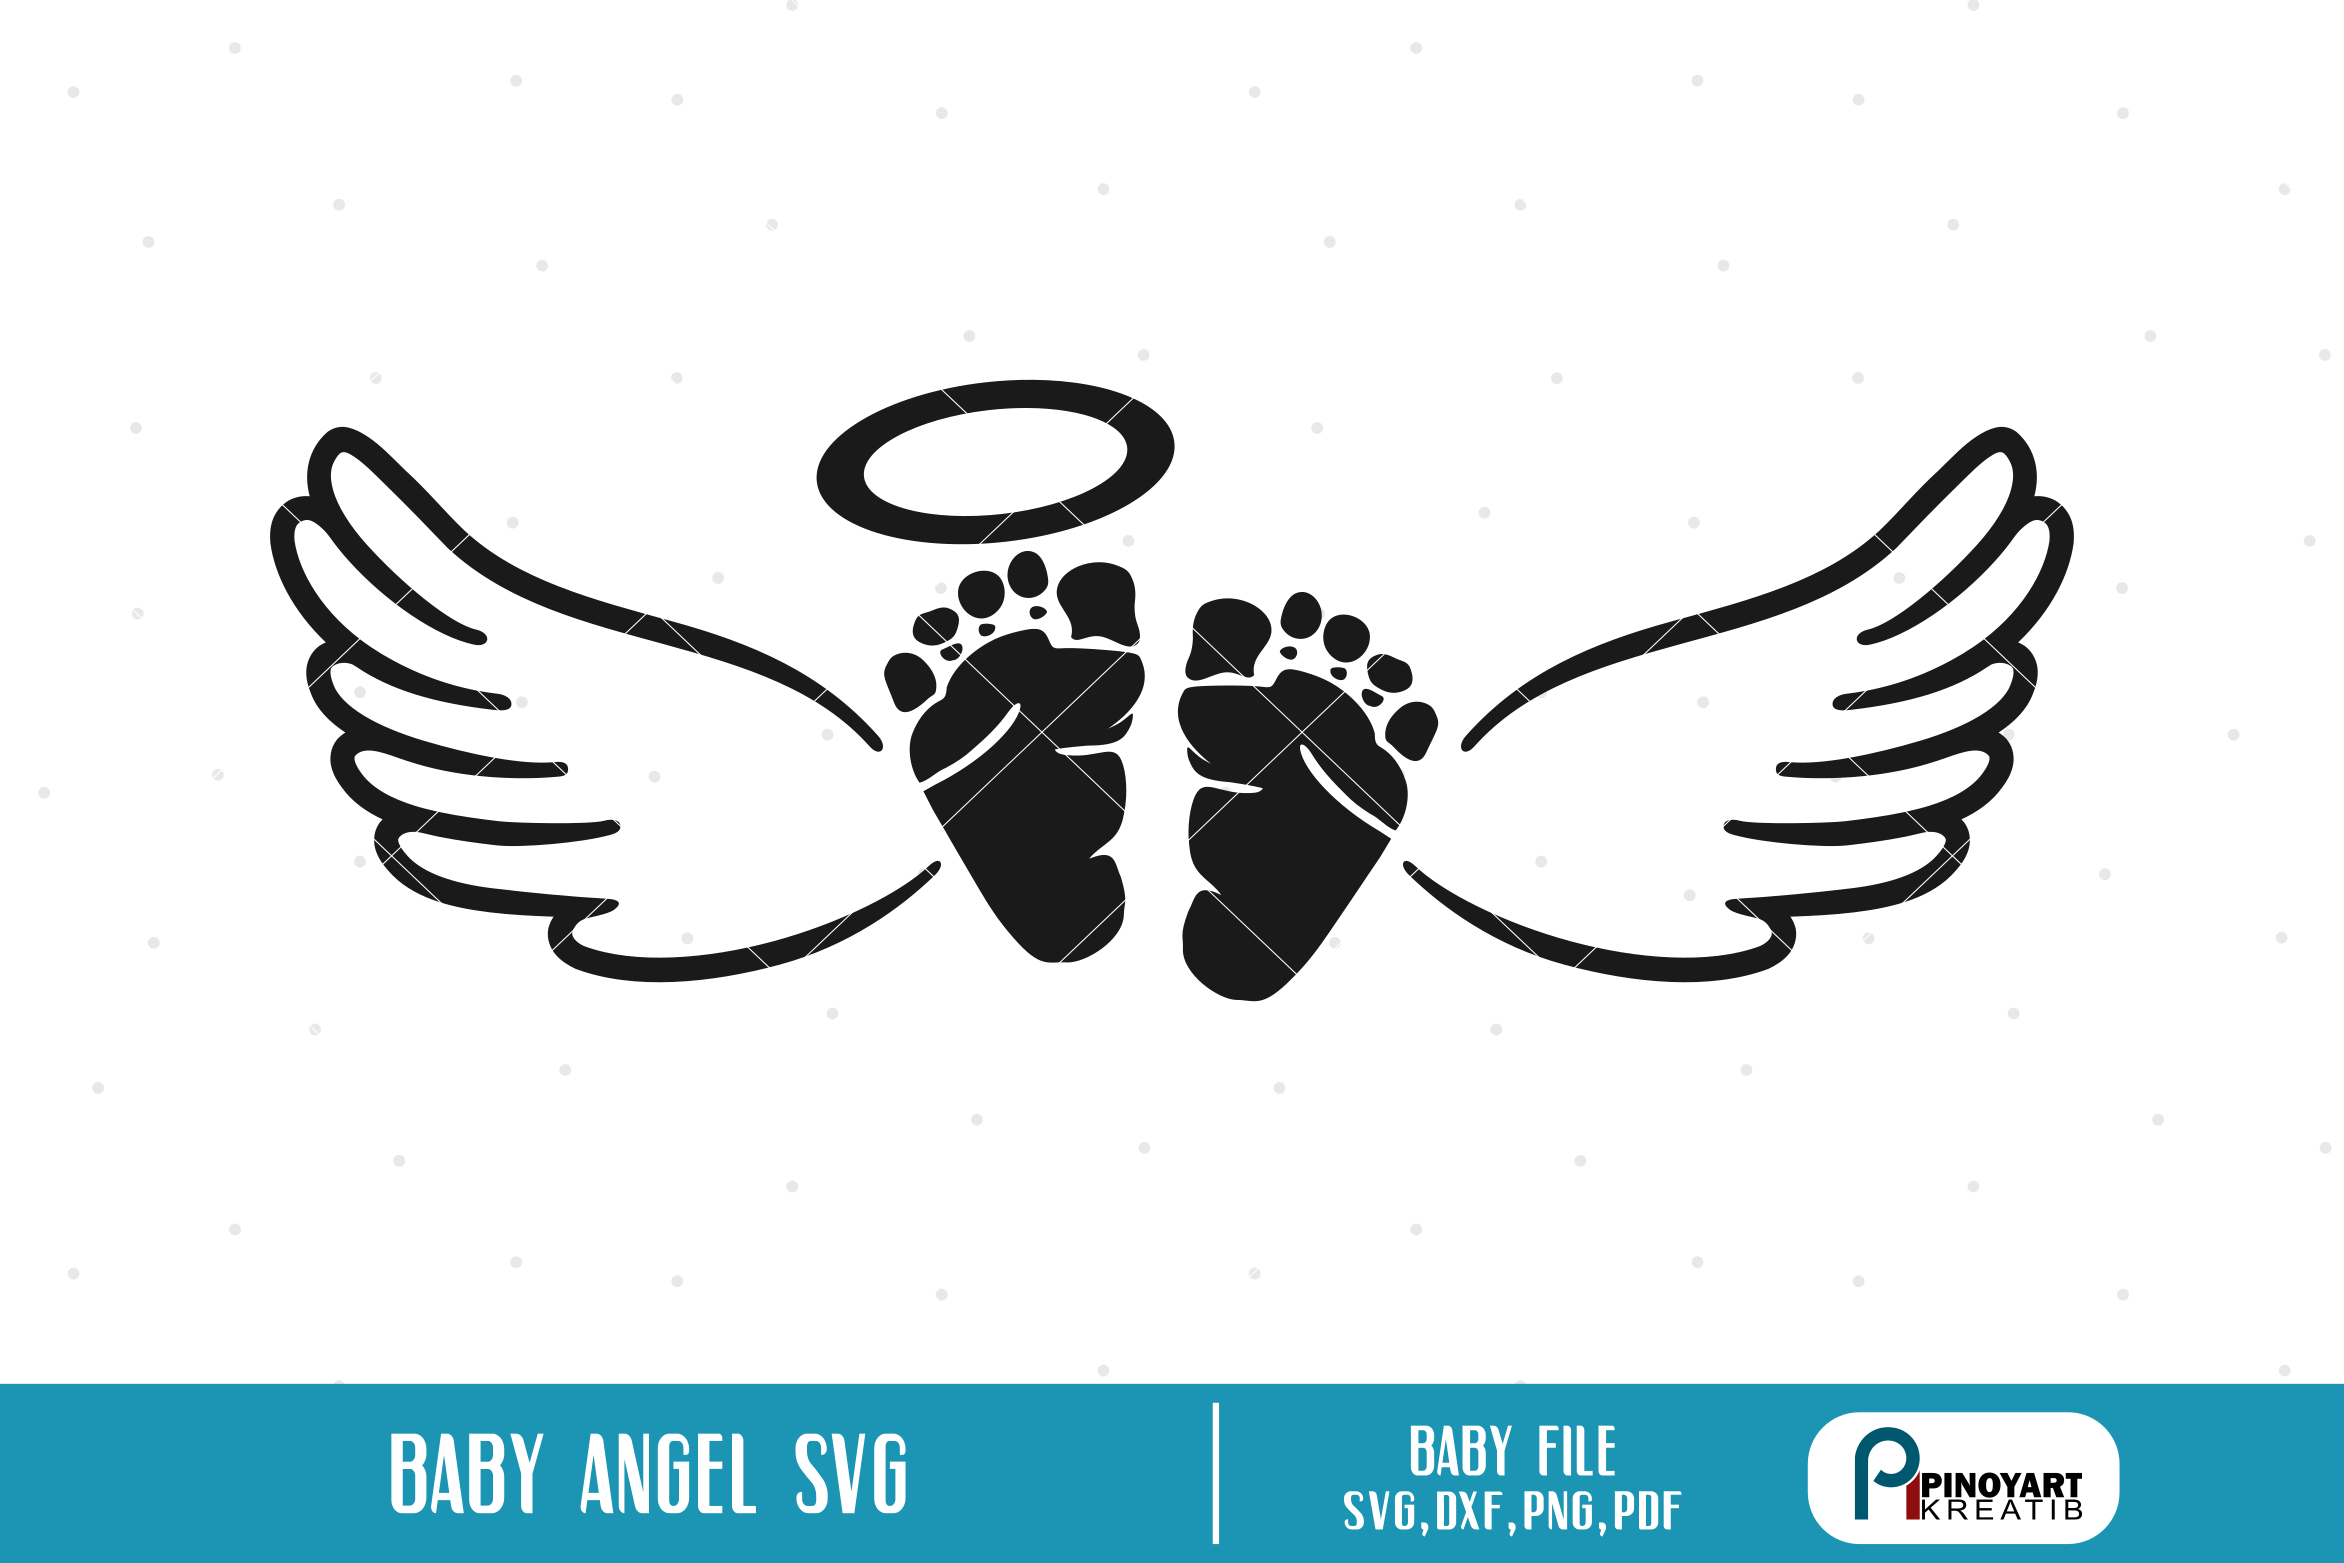 Baby Angel svg a baby feet with wings vector file (With